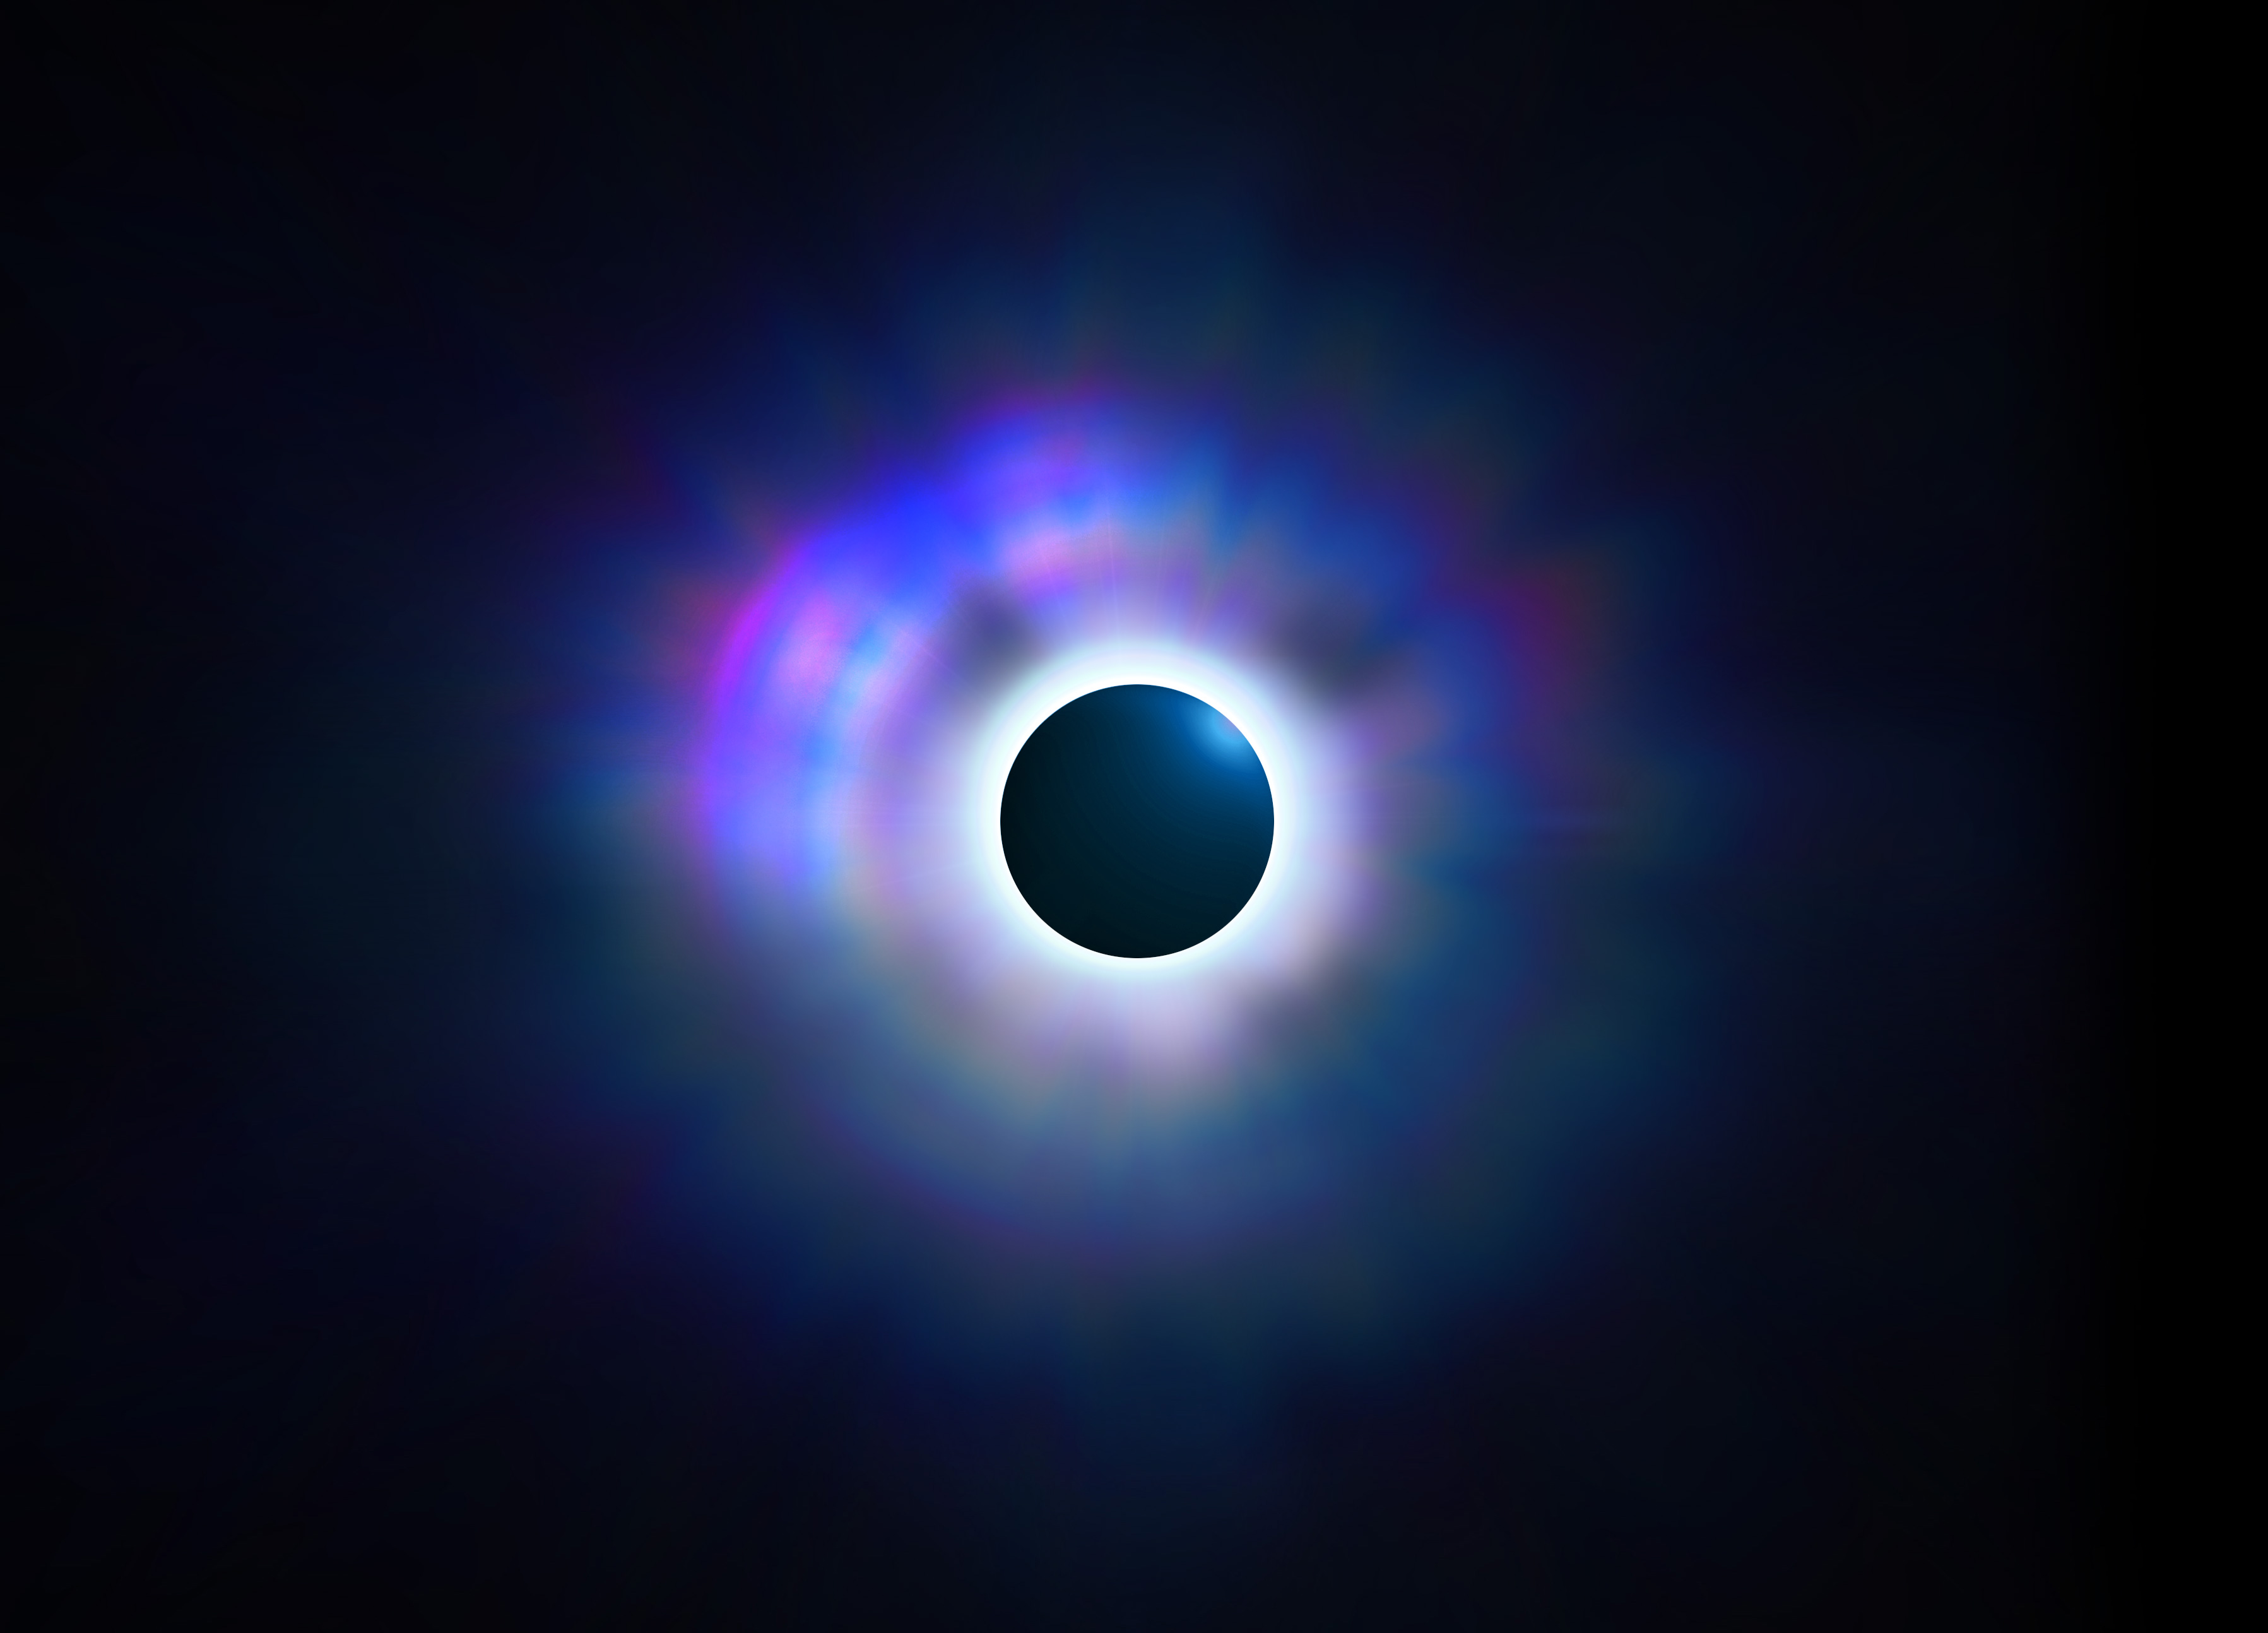 Solar eclipse background for Hero section